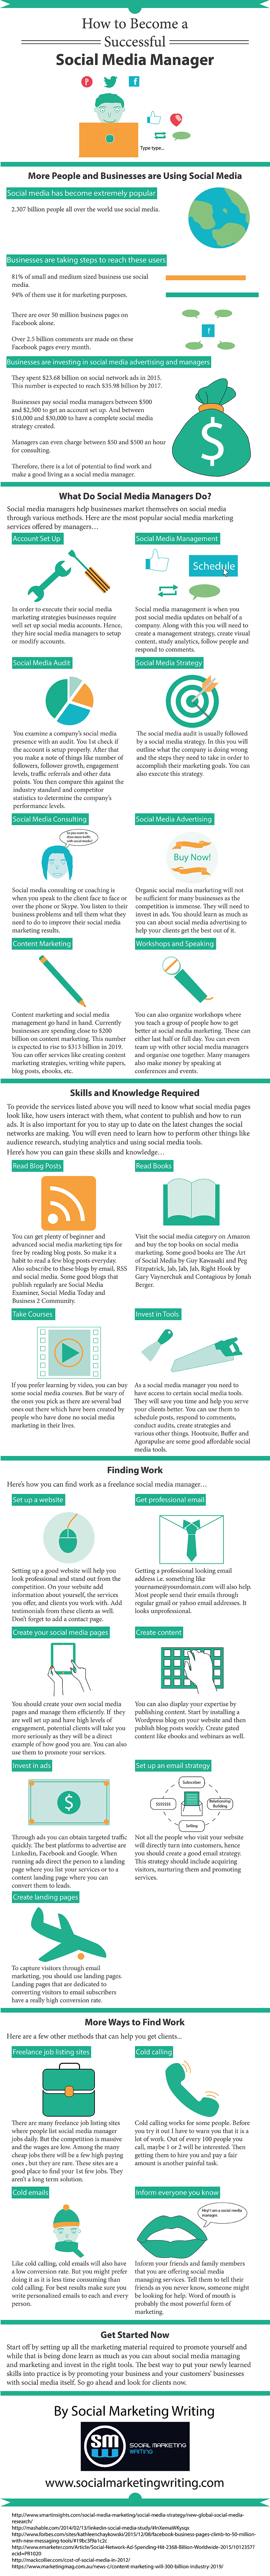 How to Become a Social Media Manager #Infographic